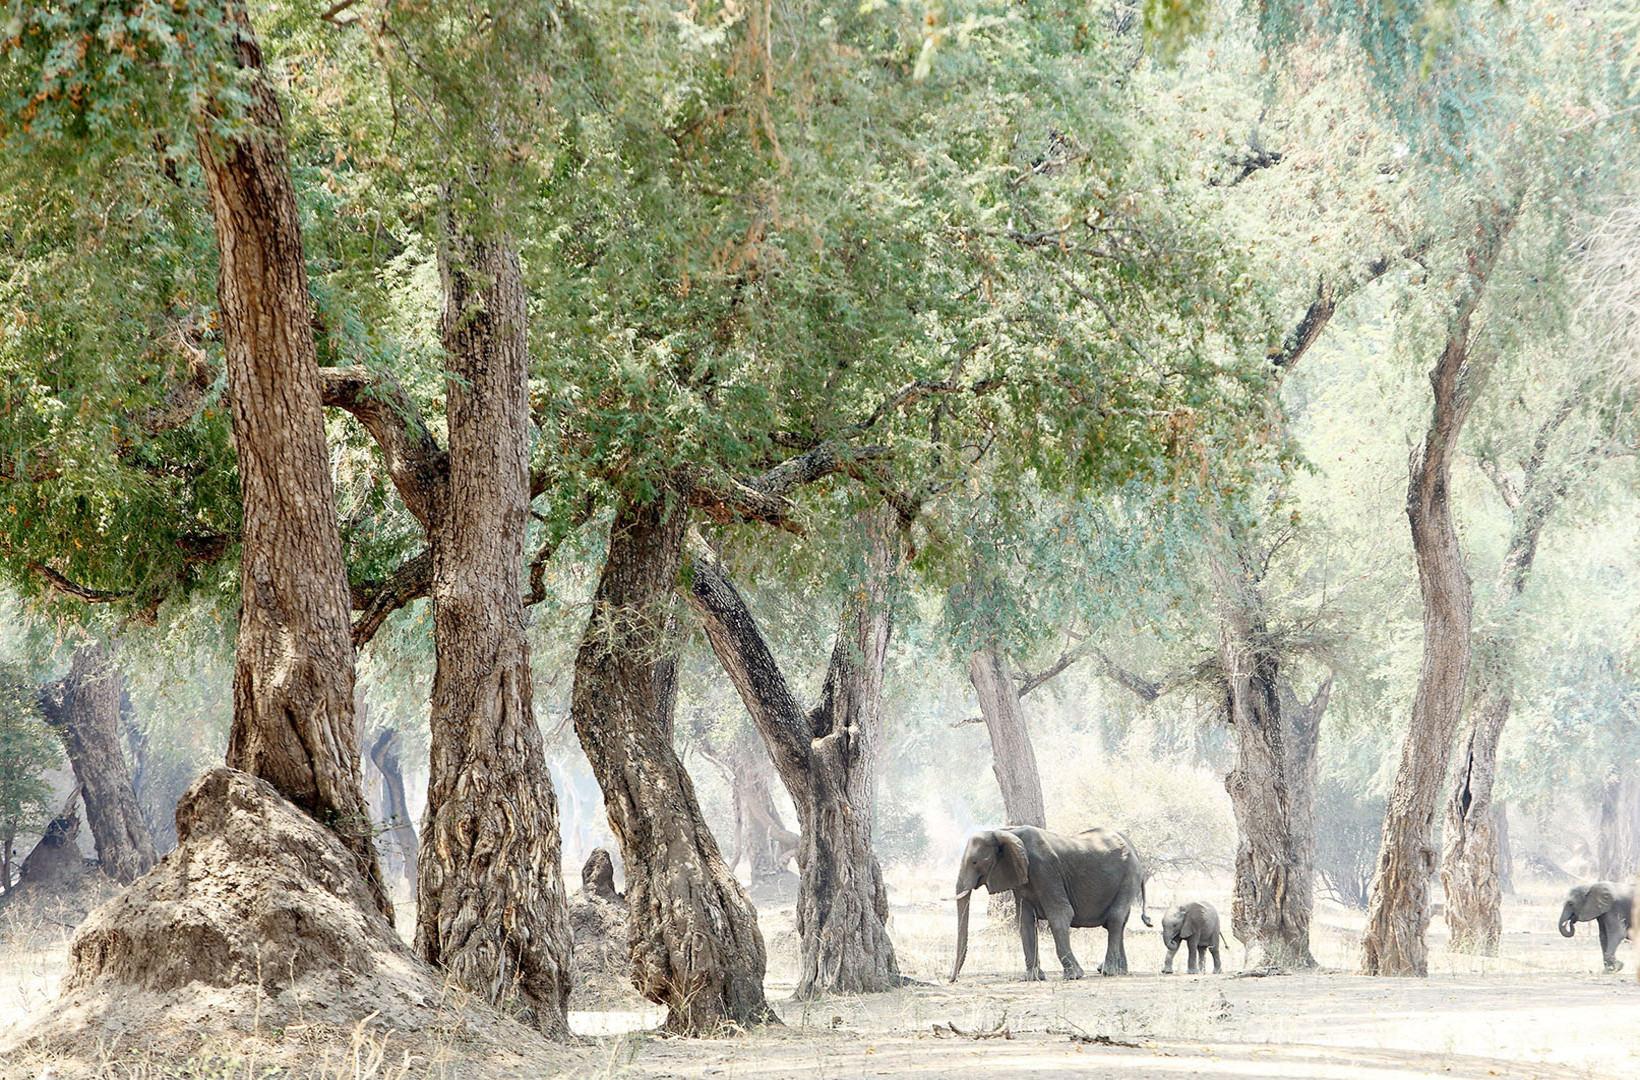 An African female elephant walks through a forest with her calf in Mana Pools National Park Zimbabwe